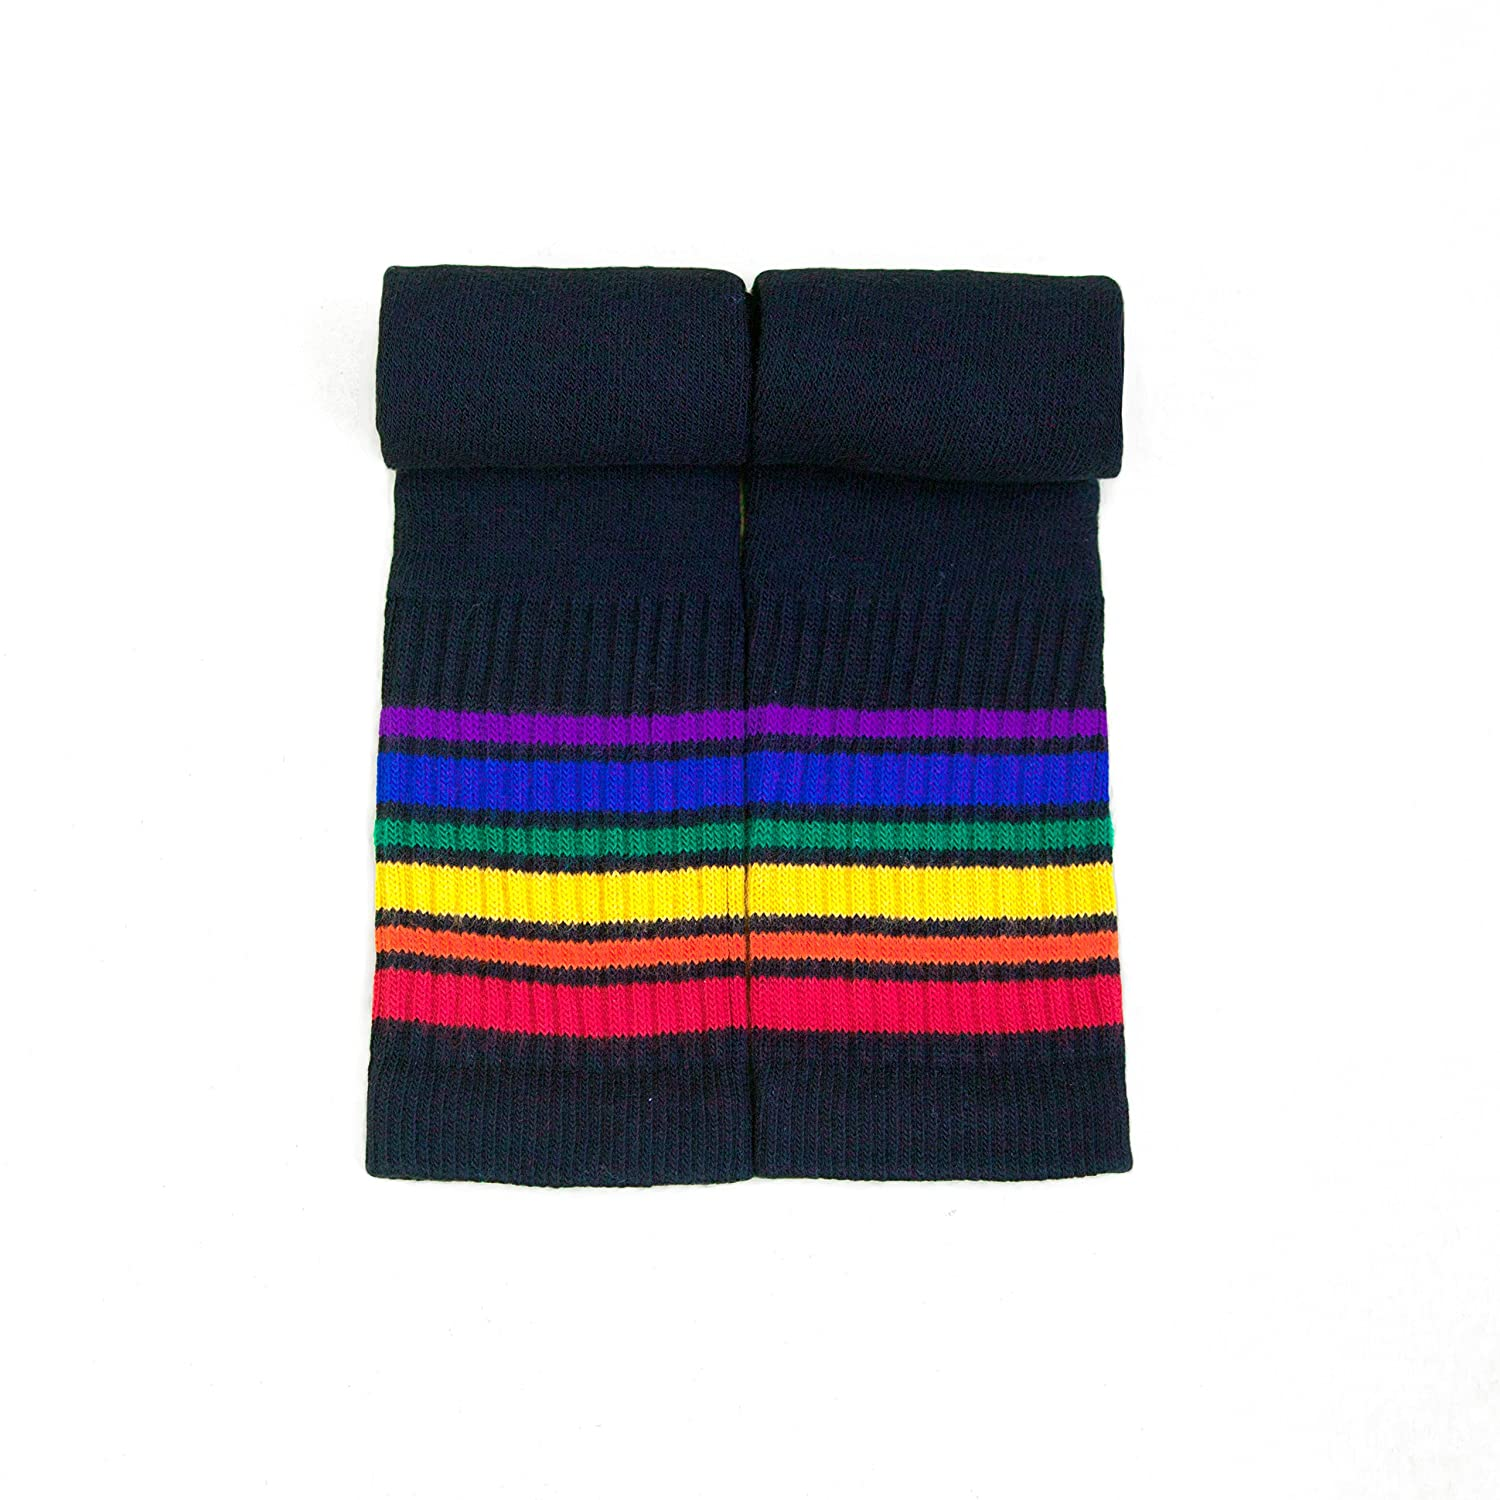 Pride Socks Kids Black Rainbow Tube Socks BT1-14